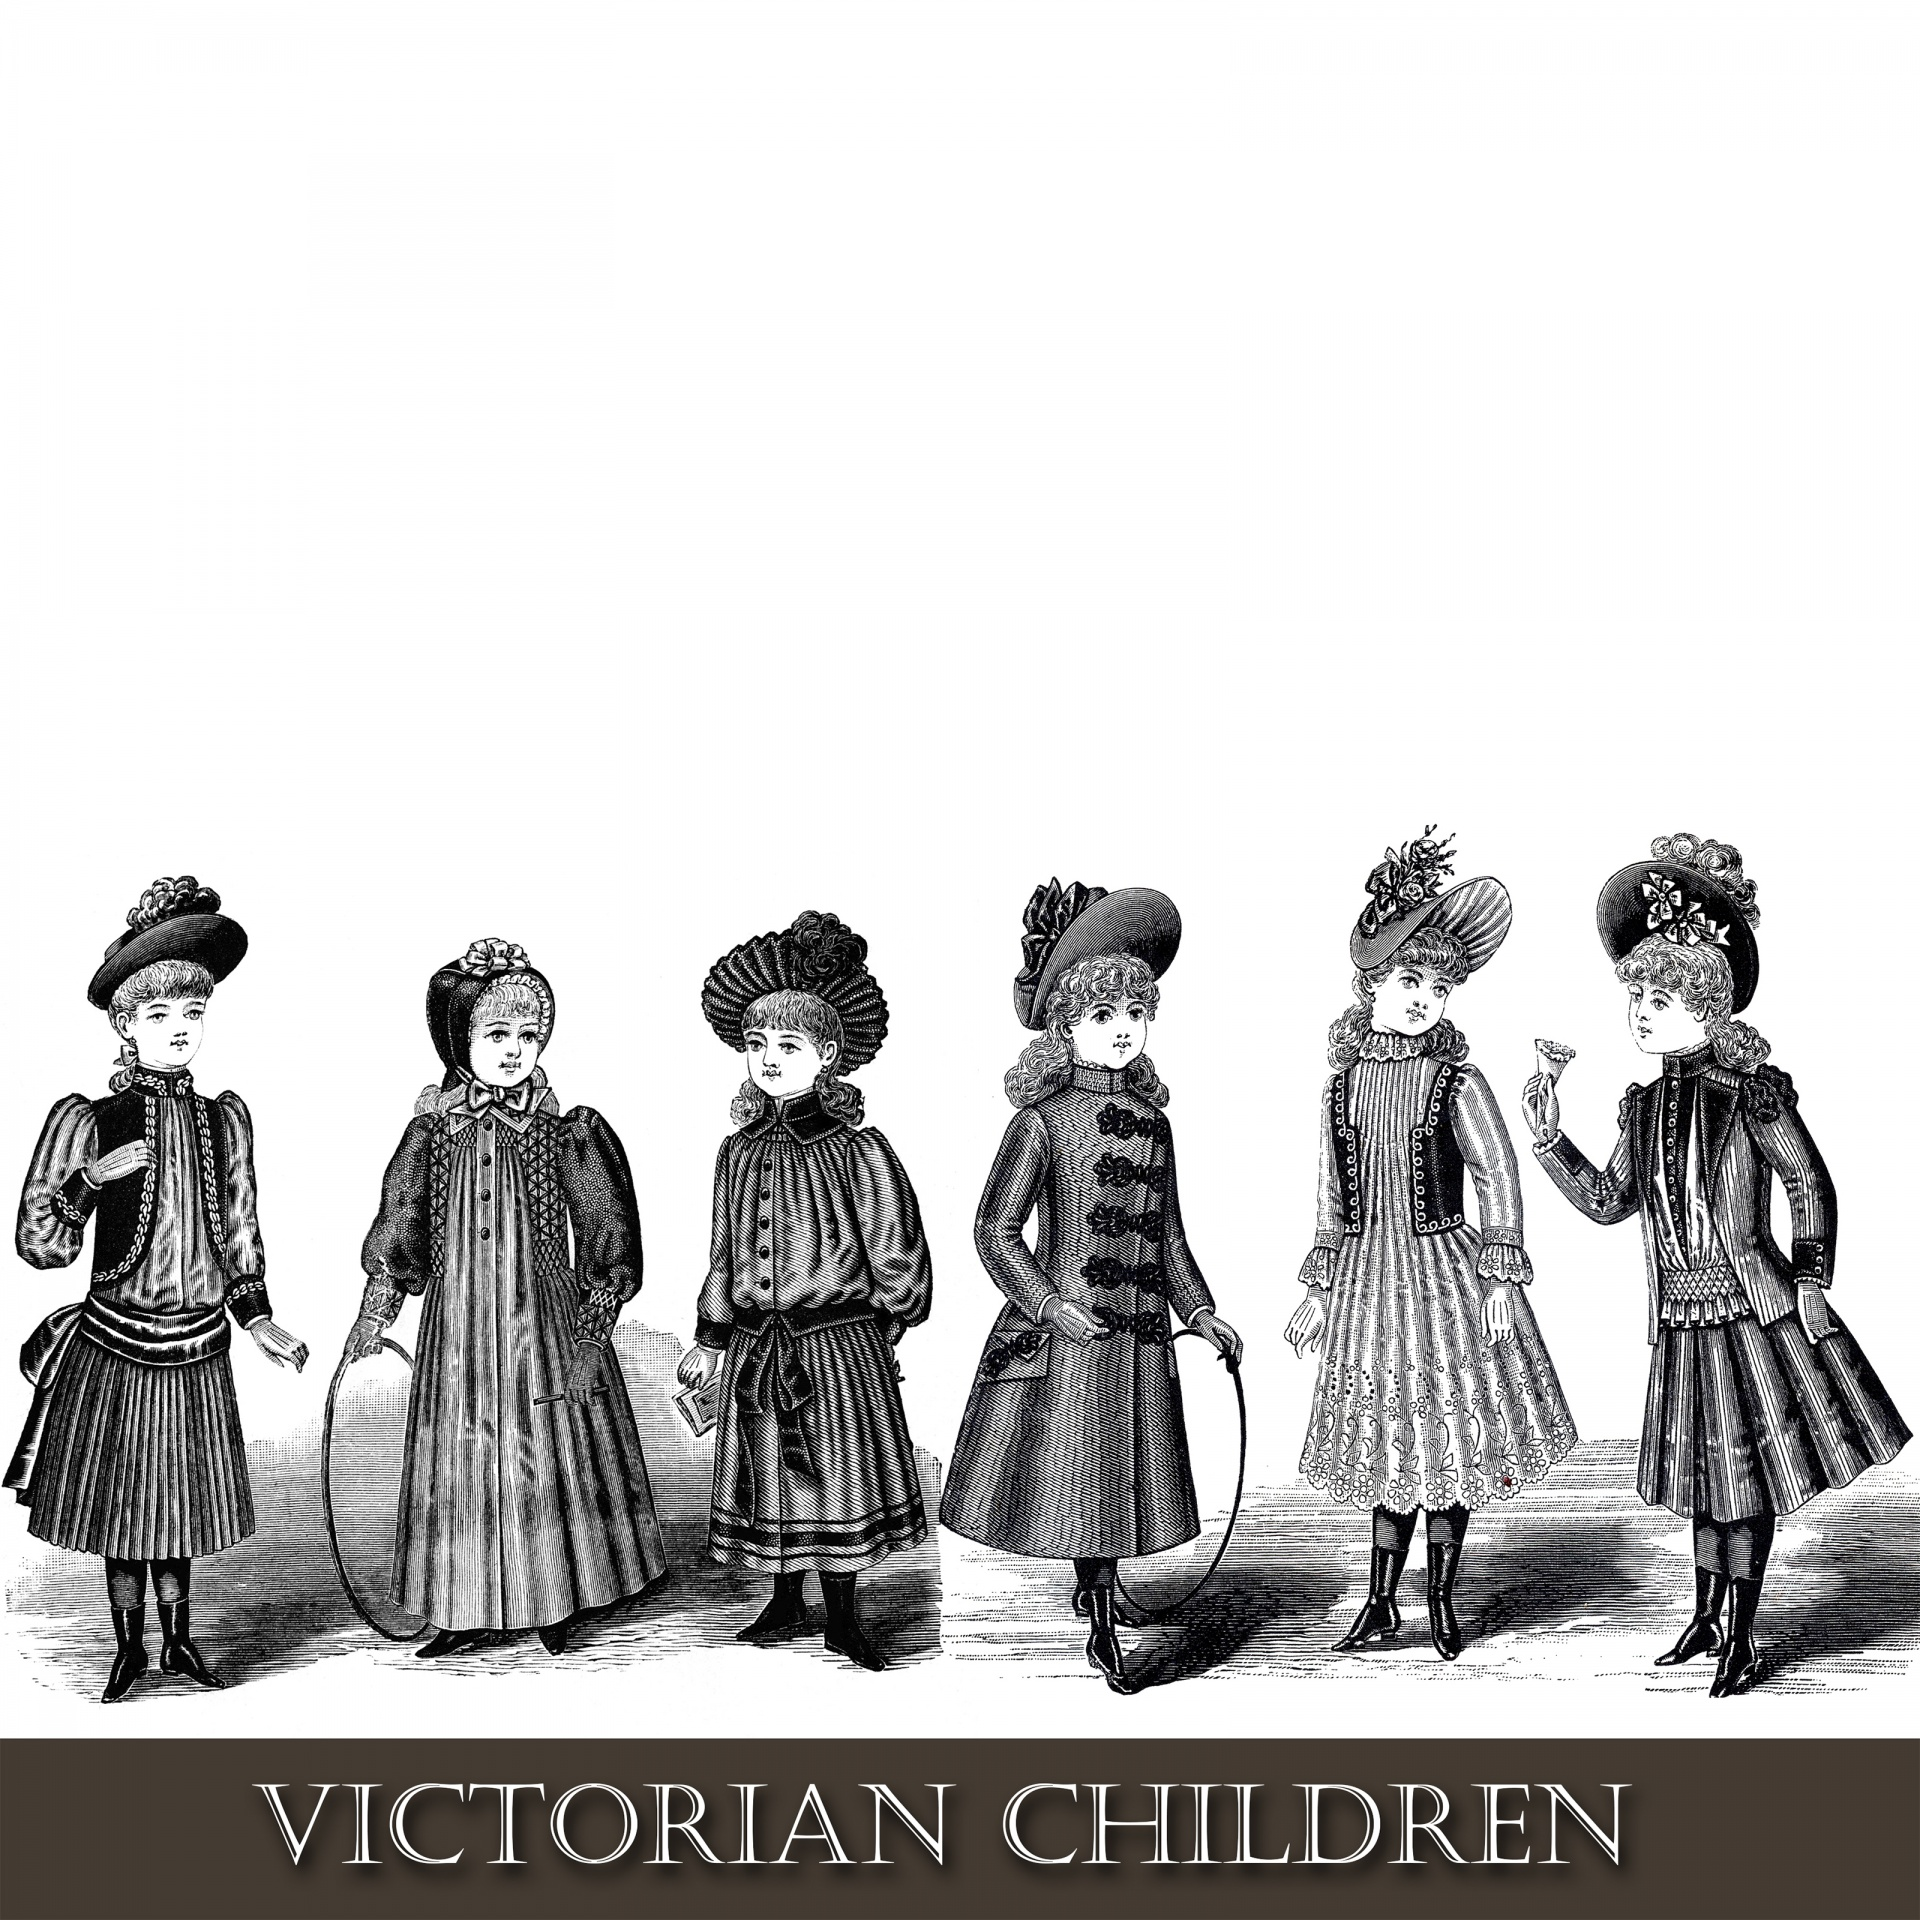 Victorian clipart. Children free stock photo